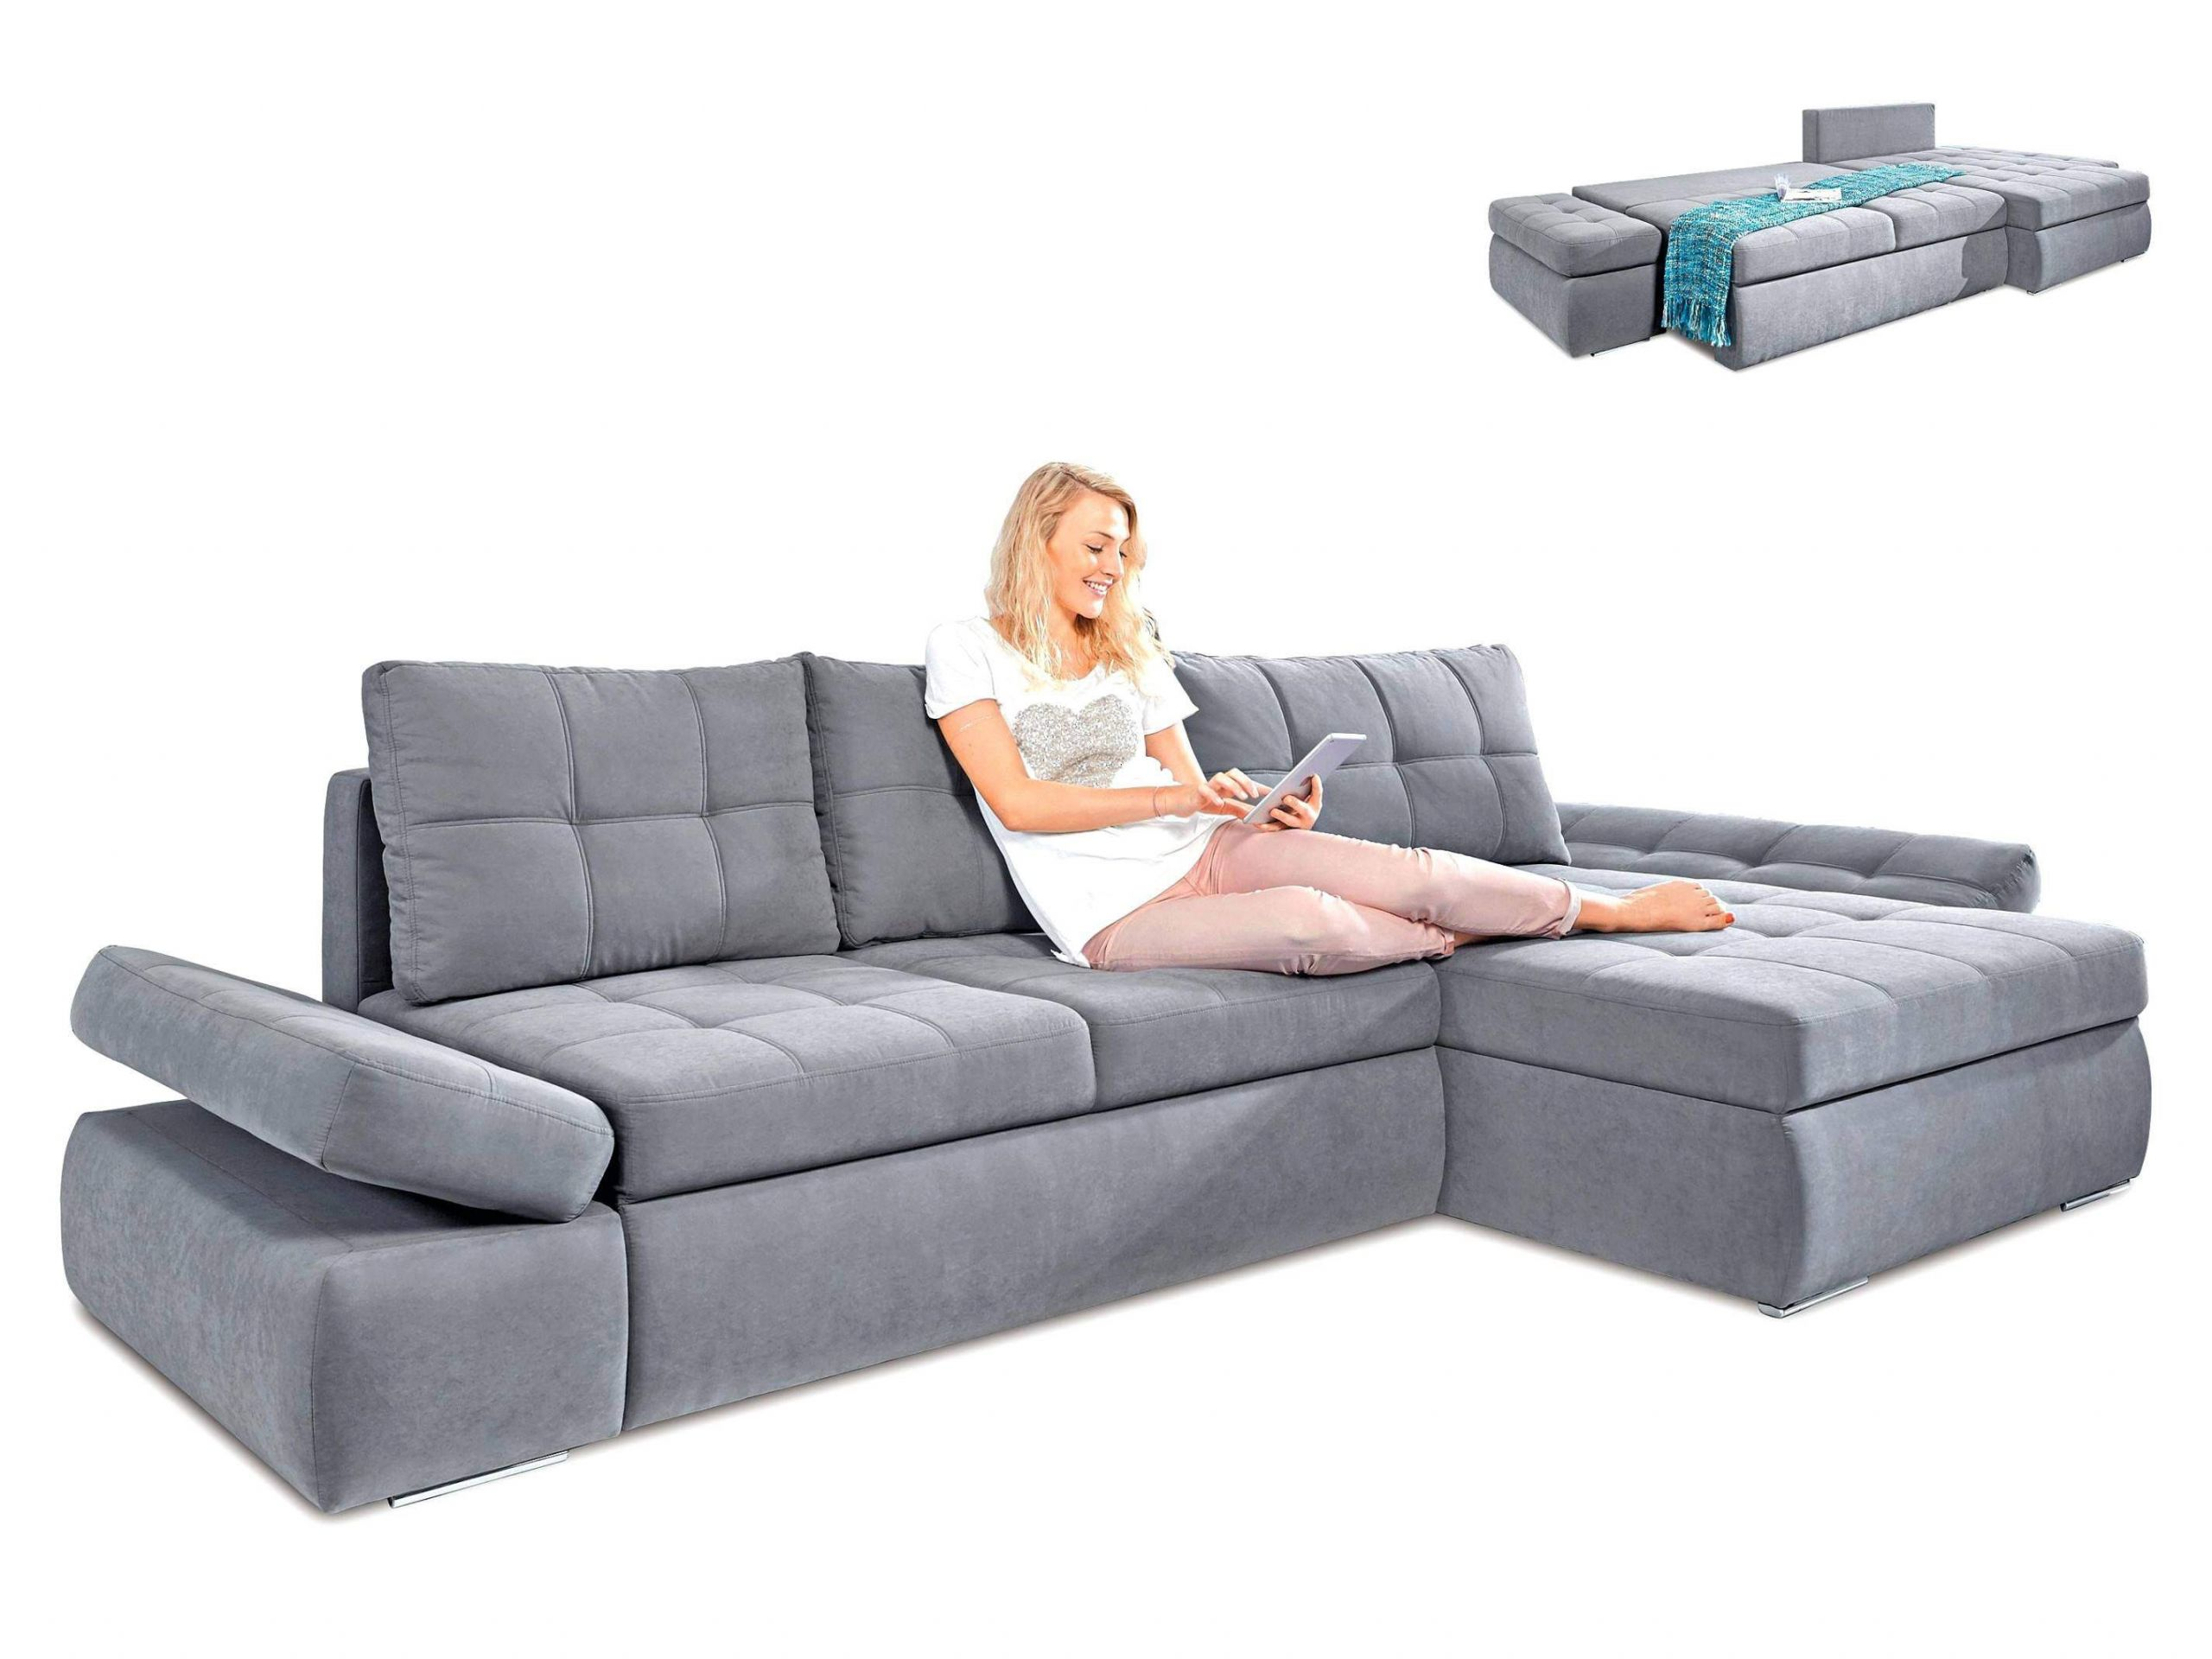 ikea stocksund sofa awesome sofa mit bettfunktion schon recamiere schlaffunktion 0d archives of ikea stocksund sofa